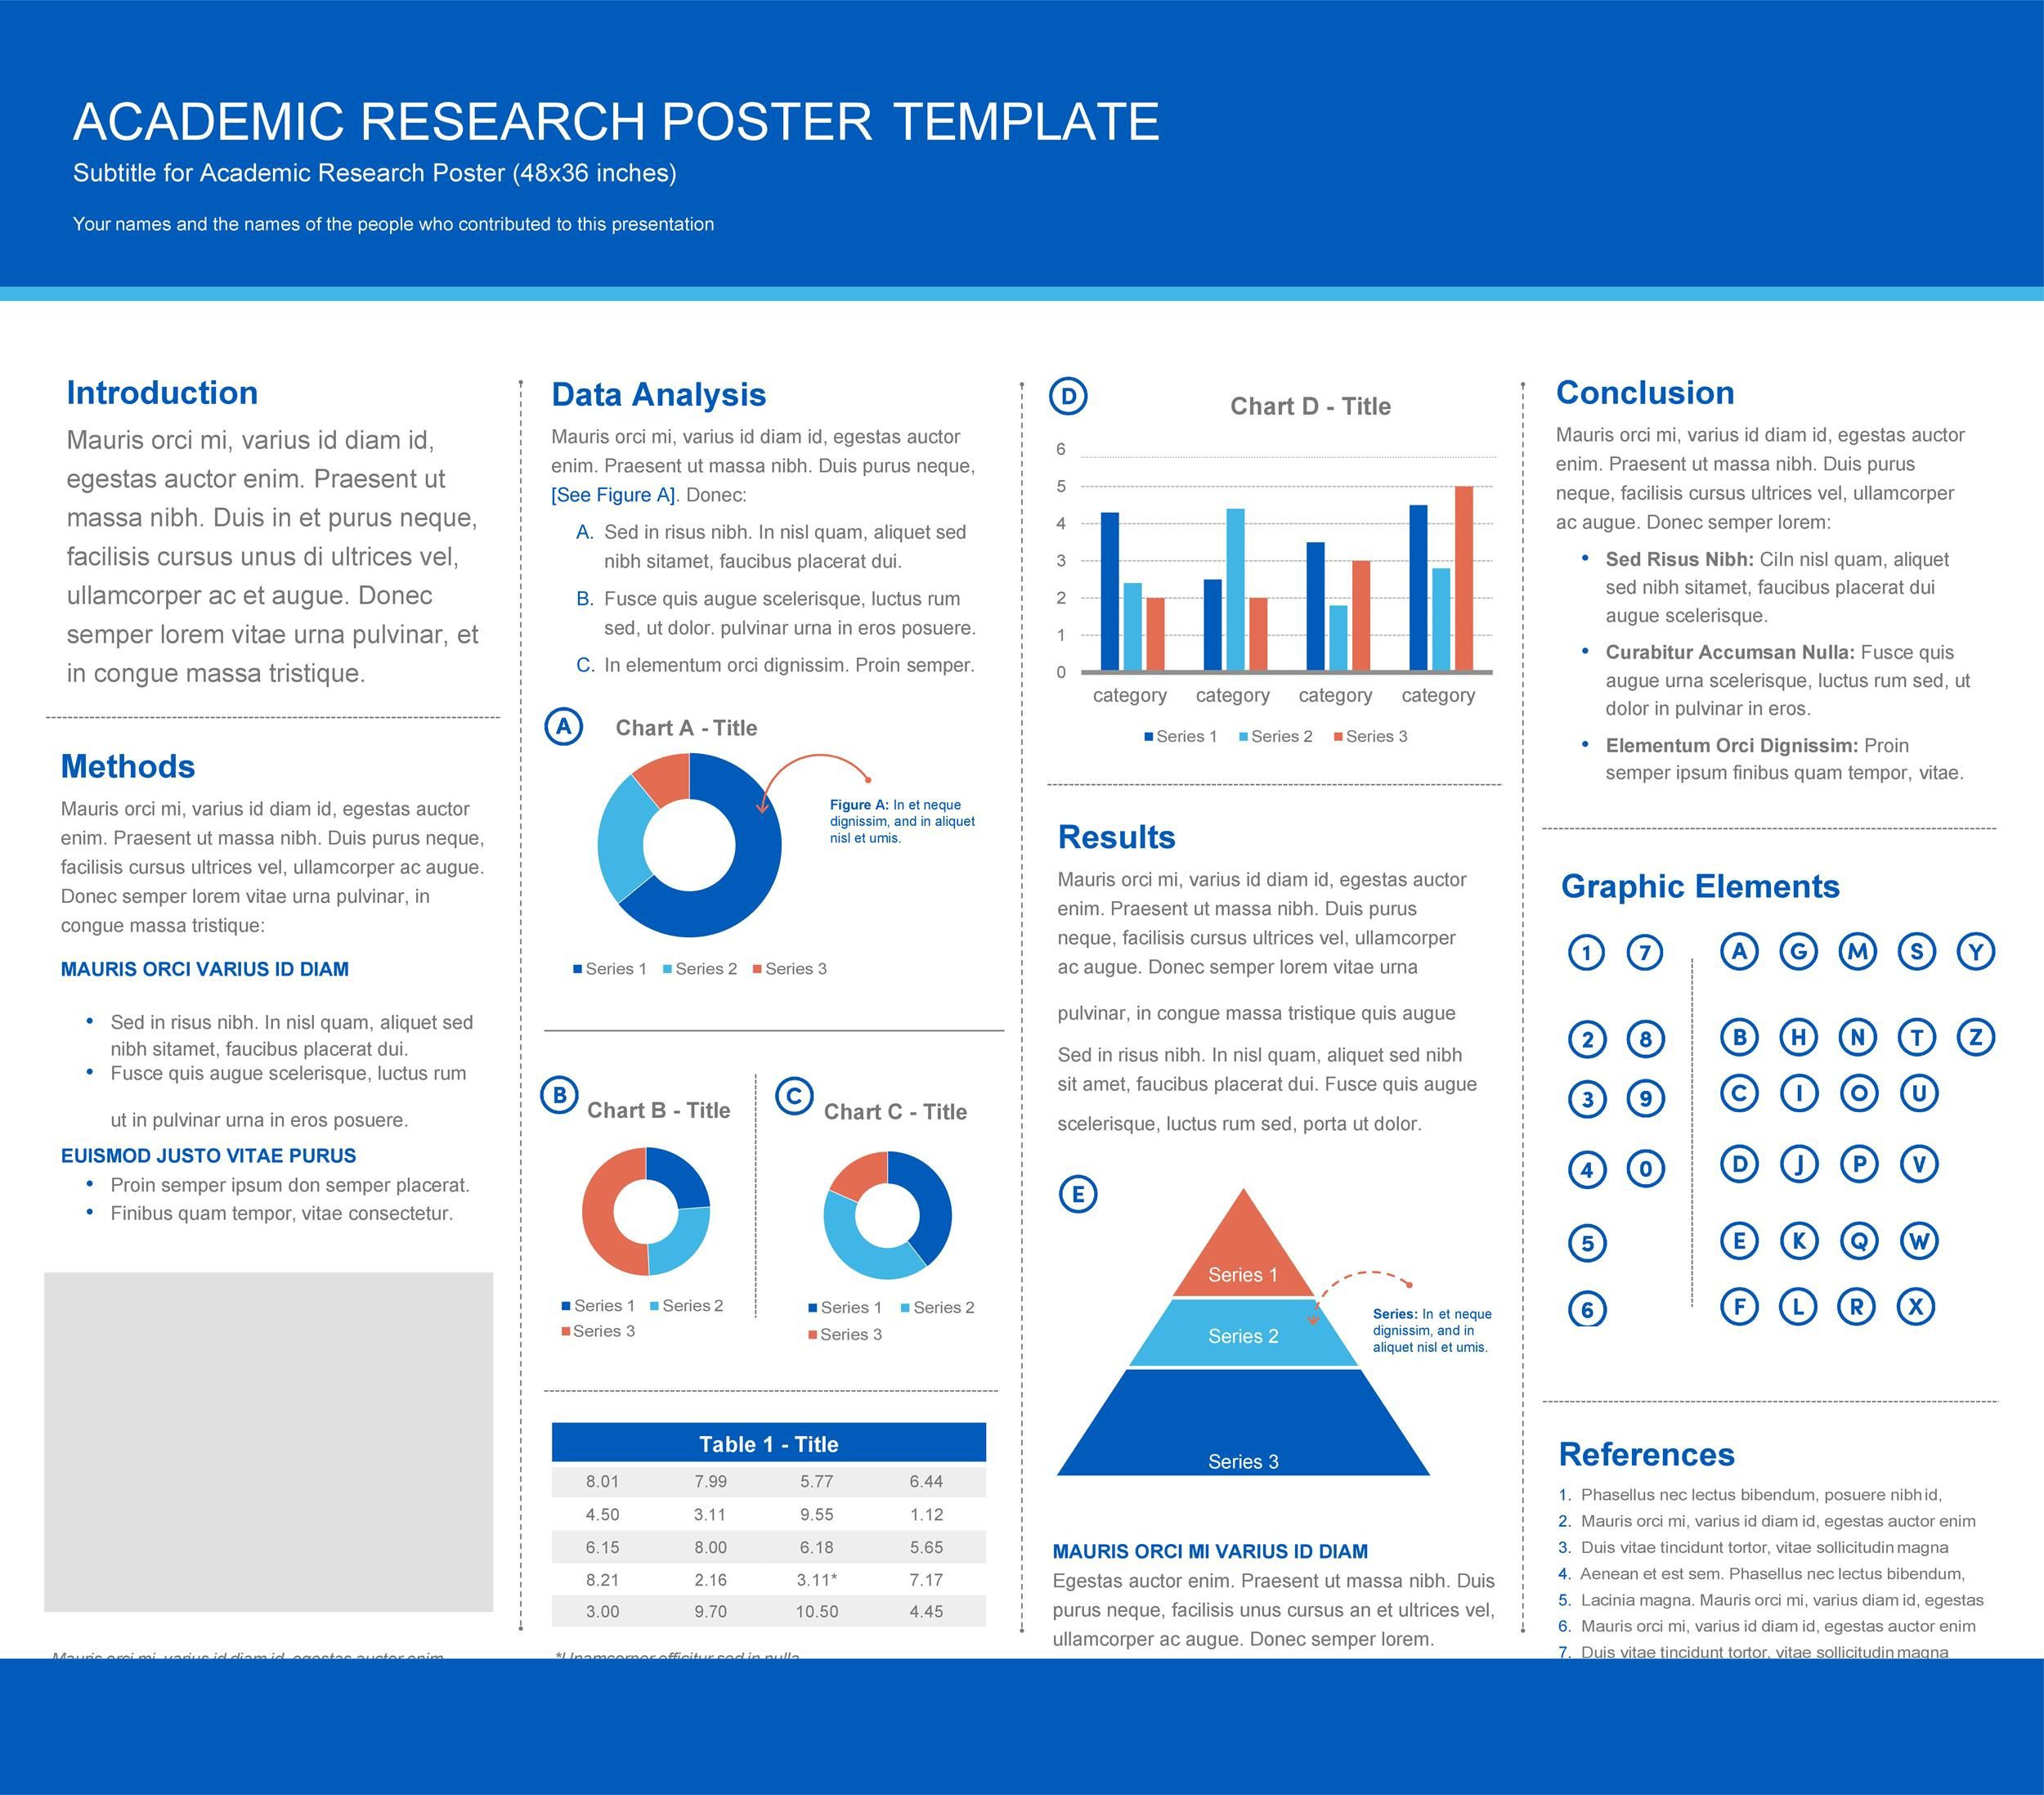 010 Fascinating Scientific Poster Presentation Template Free Download High Definition Full